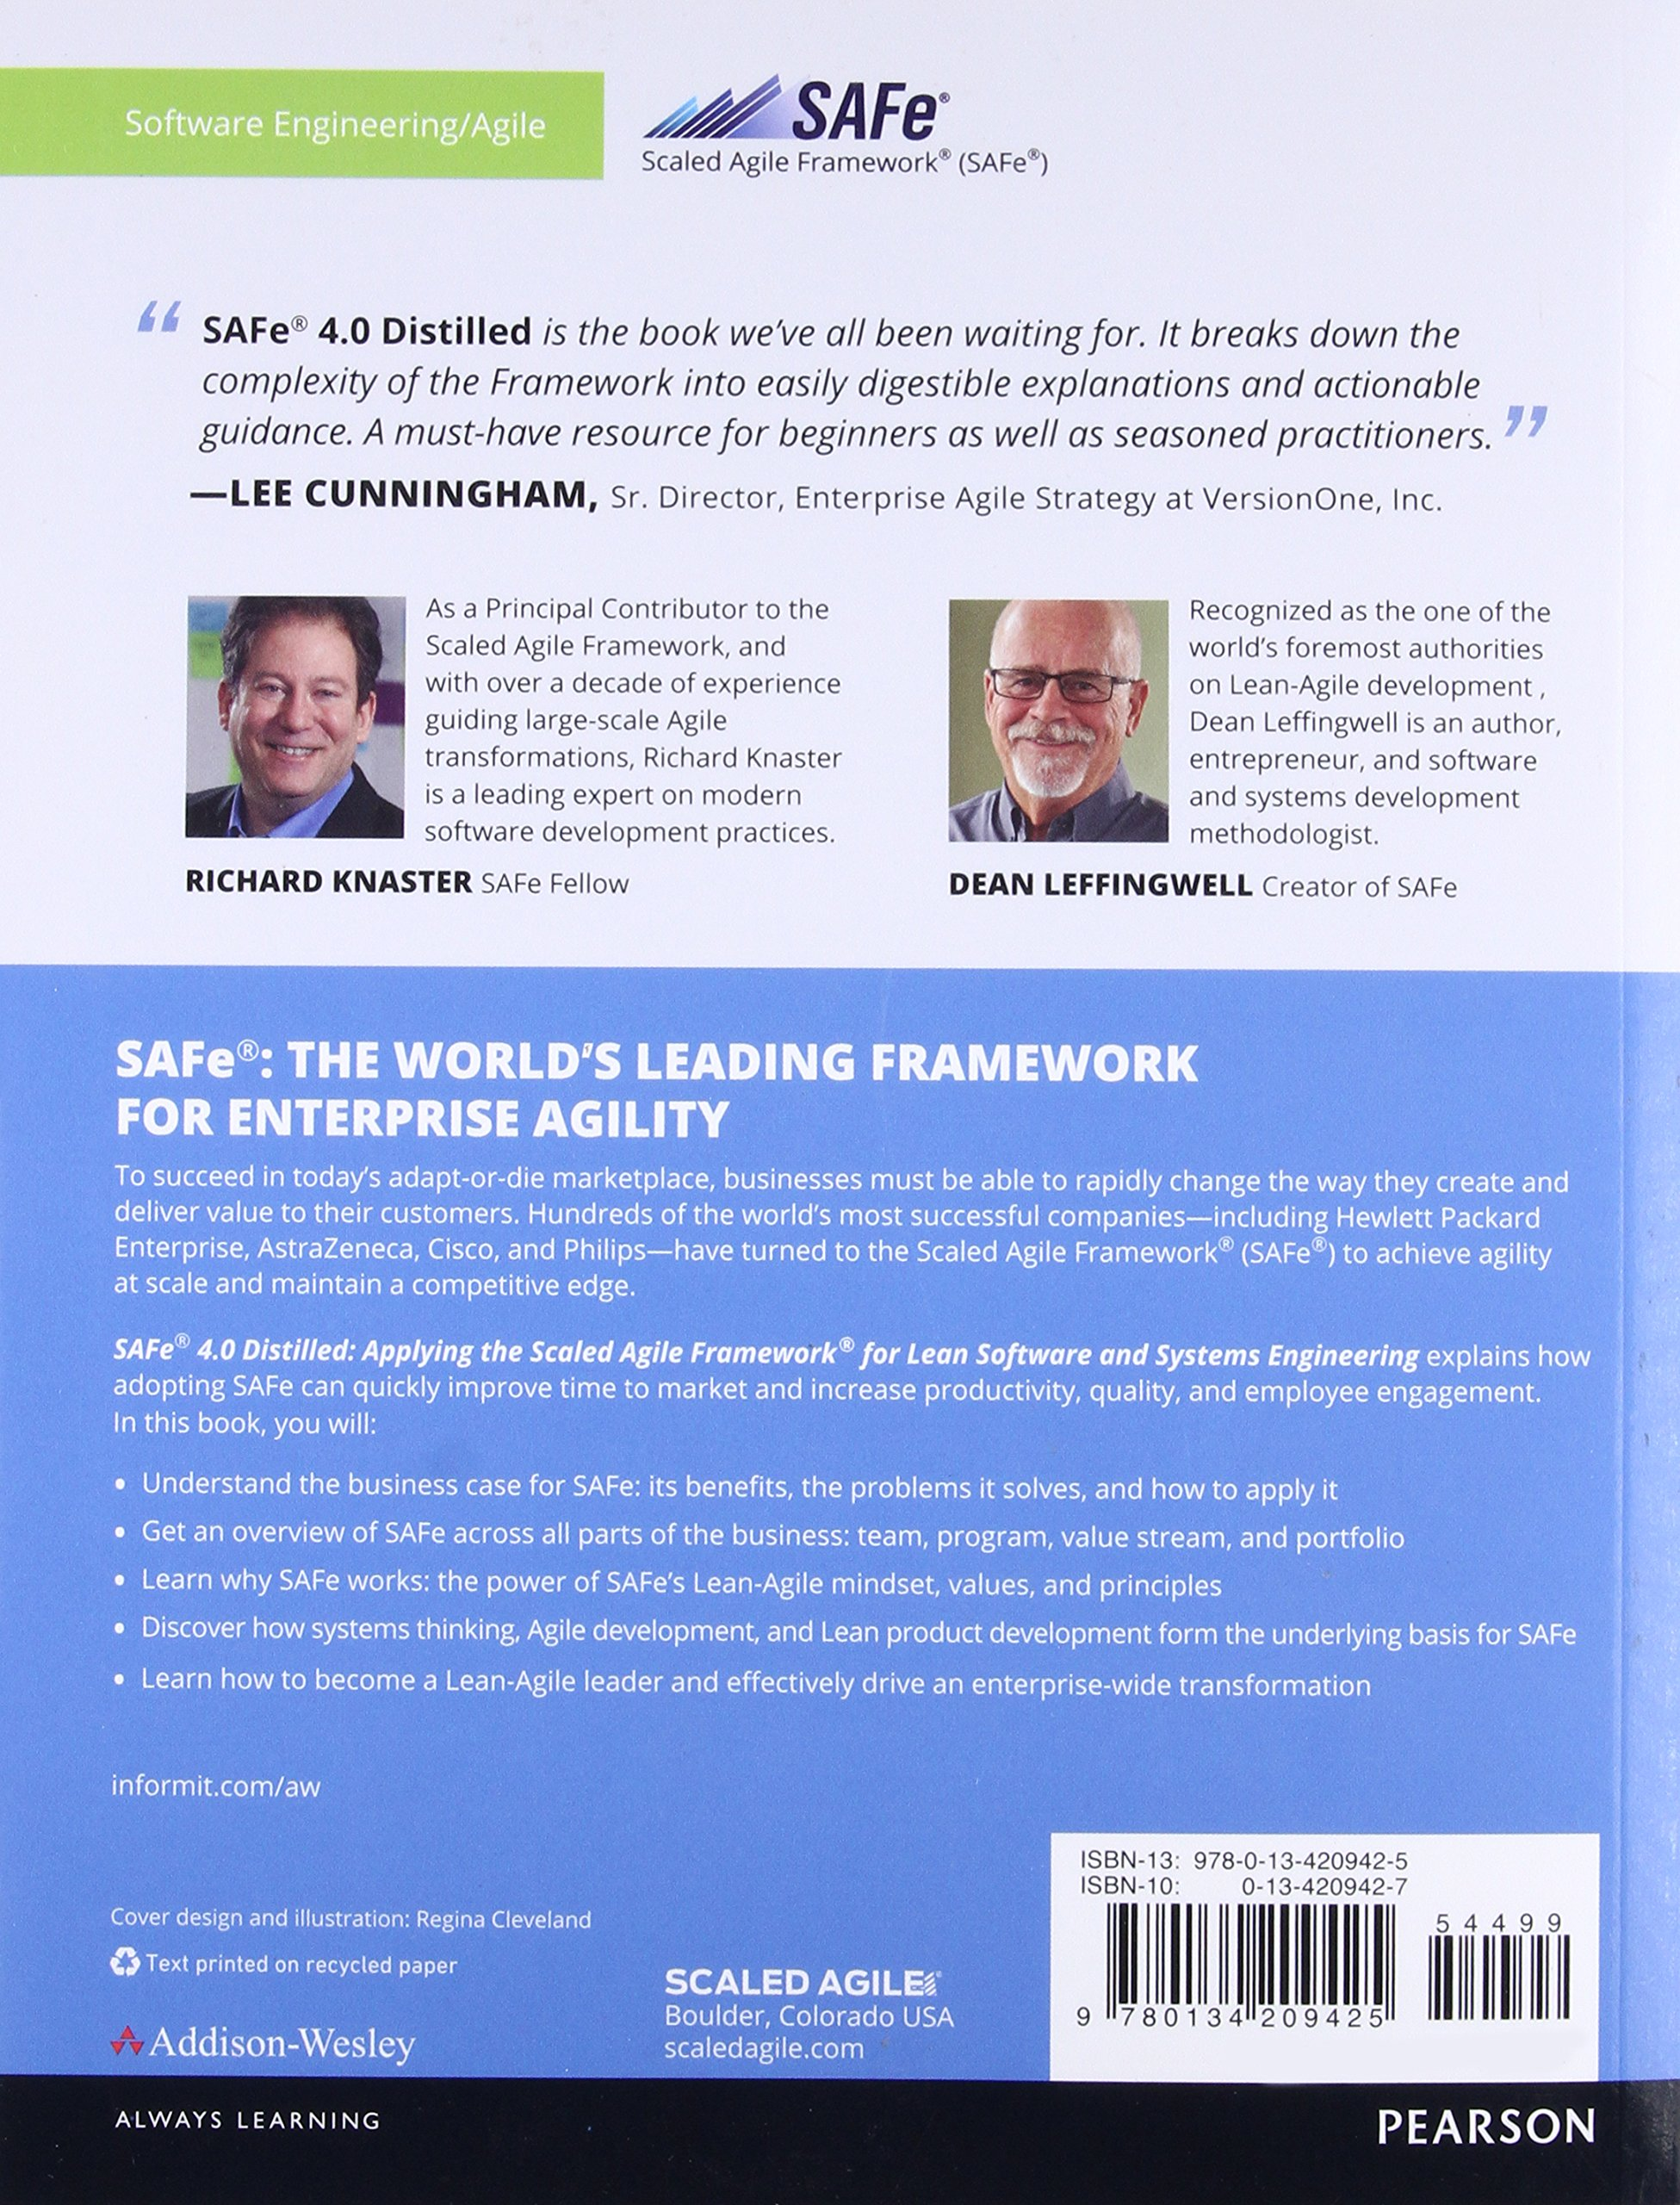 Buy safe 40 distilled applying the scaled agile framework for buy safe 40 distilled applying the scaled agile framework for lean software and systems engineering book online at low prices in india safe 40 xflitez Image collections